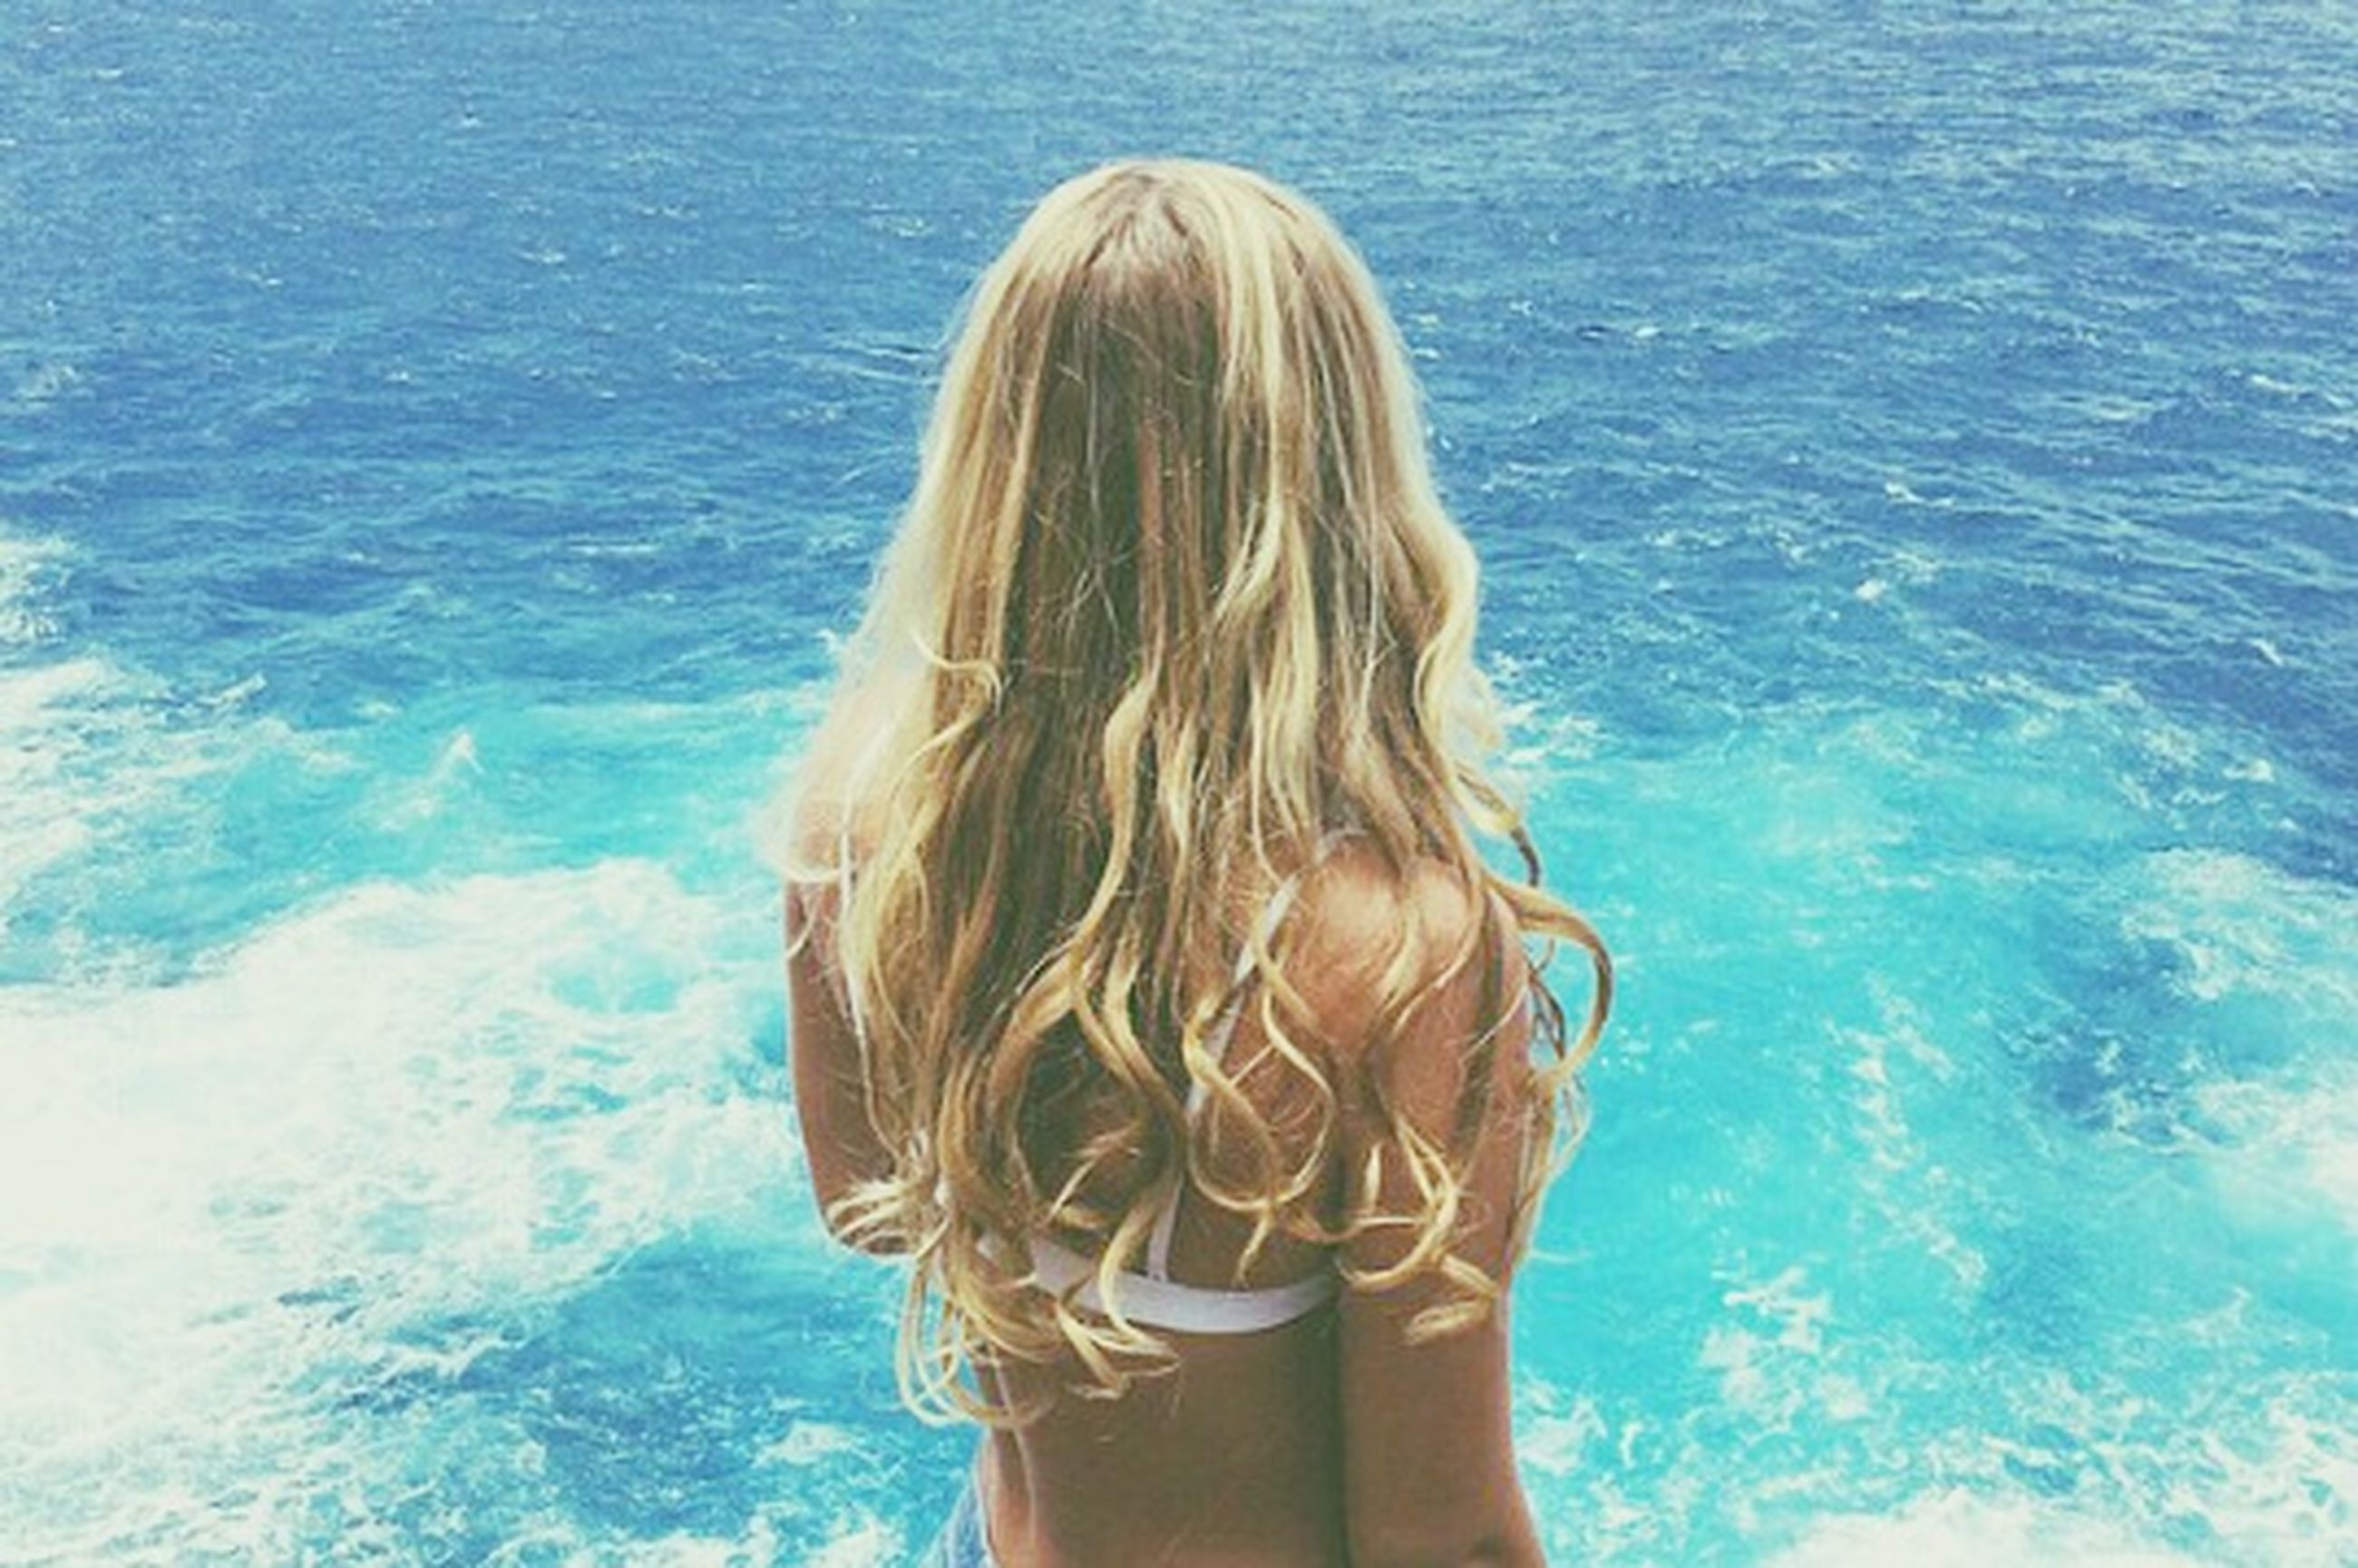 water, long hair, lifestyles, young women, sea, leisure activity, young adult, blond hair, person, rear view, brown hair, vacations, beauty, bikini, headshot, medium-length hair